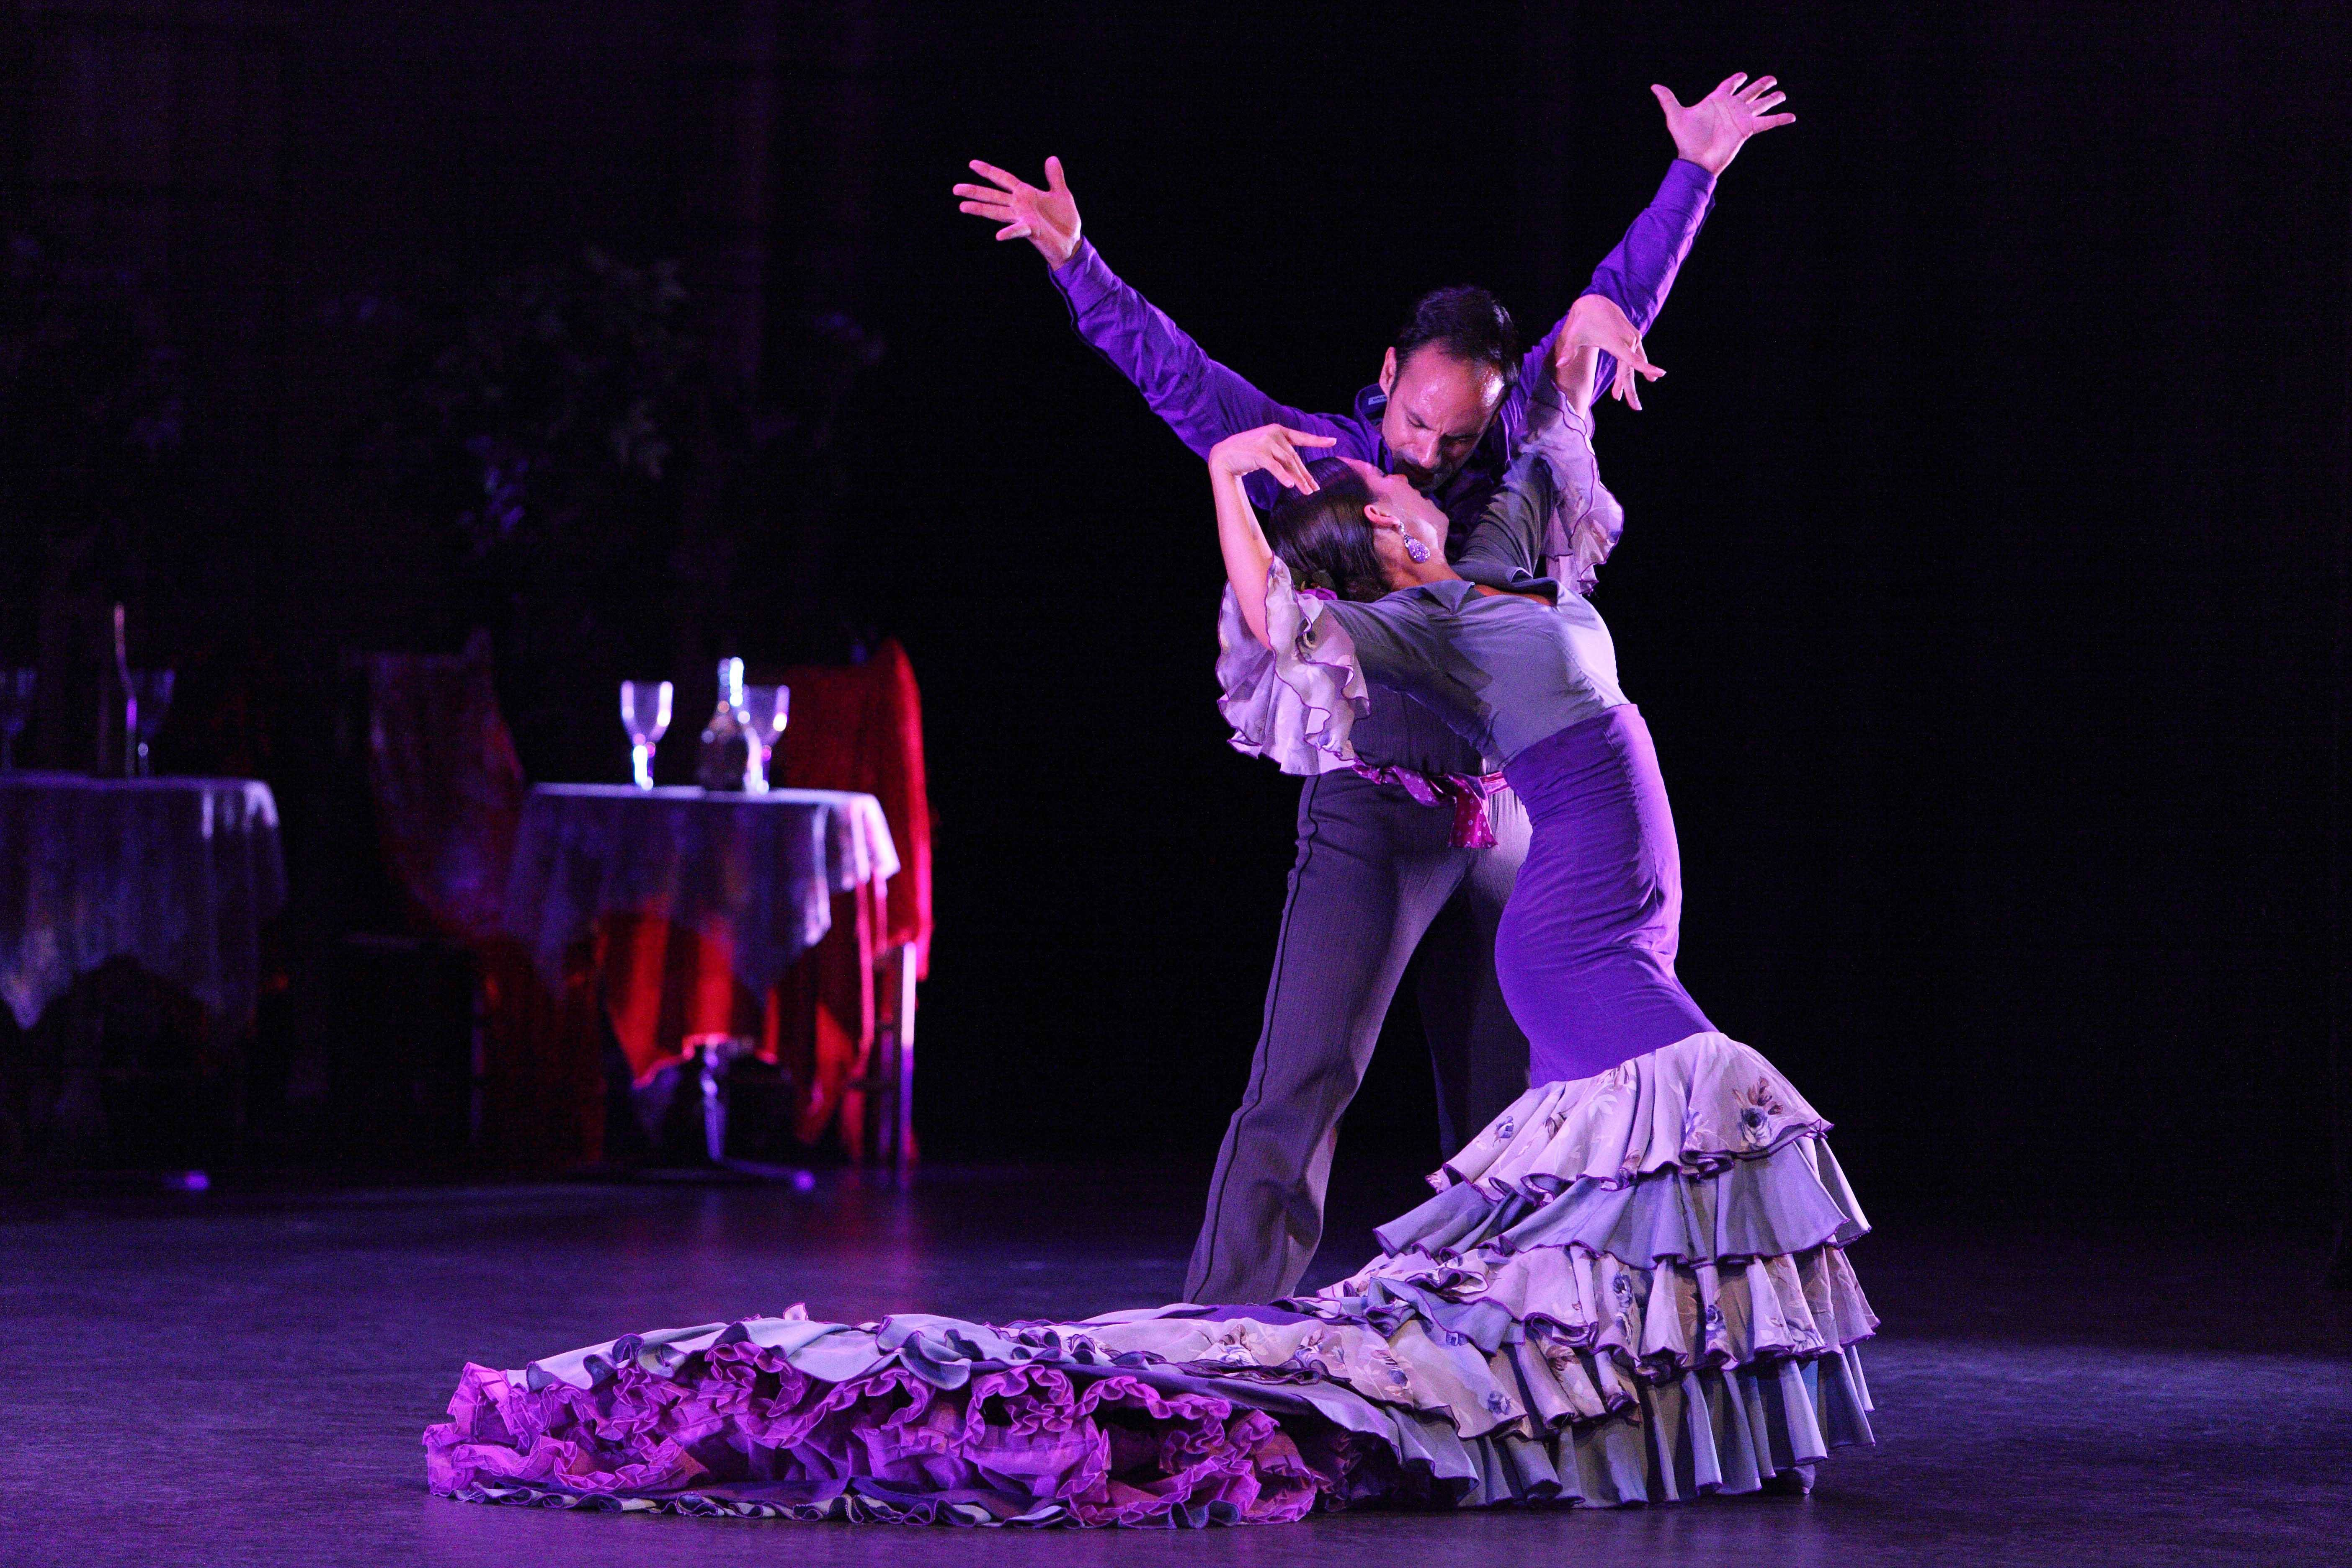 Español Spanish Dance Theater returns to the College of Lake County with its romantic dance moves on Saturday, Sept. 13.